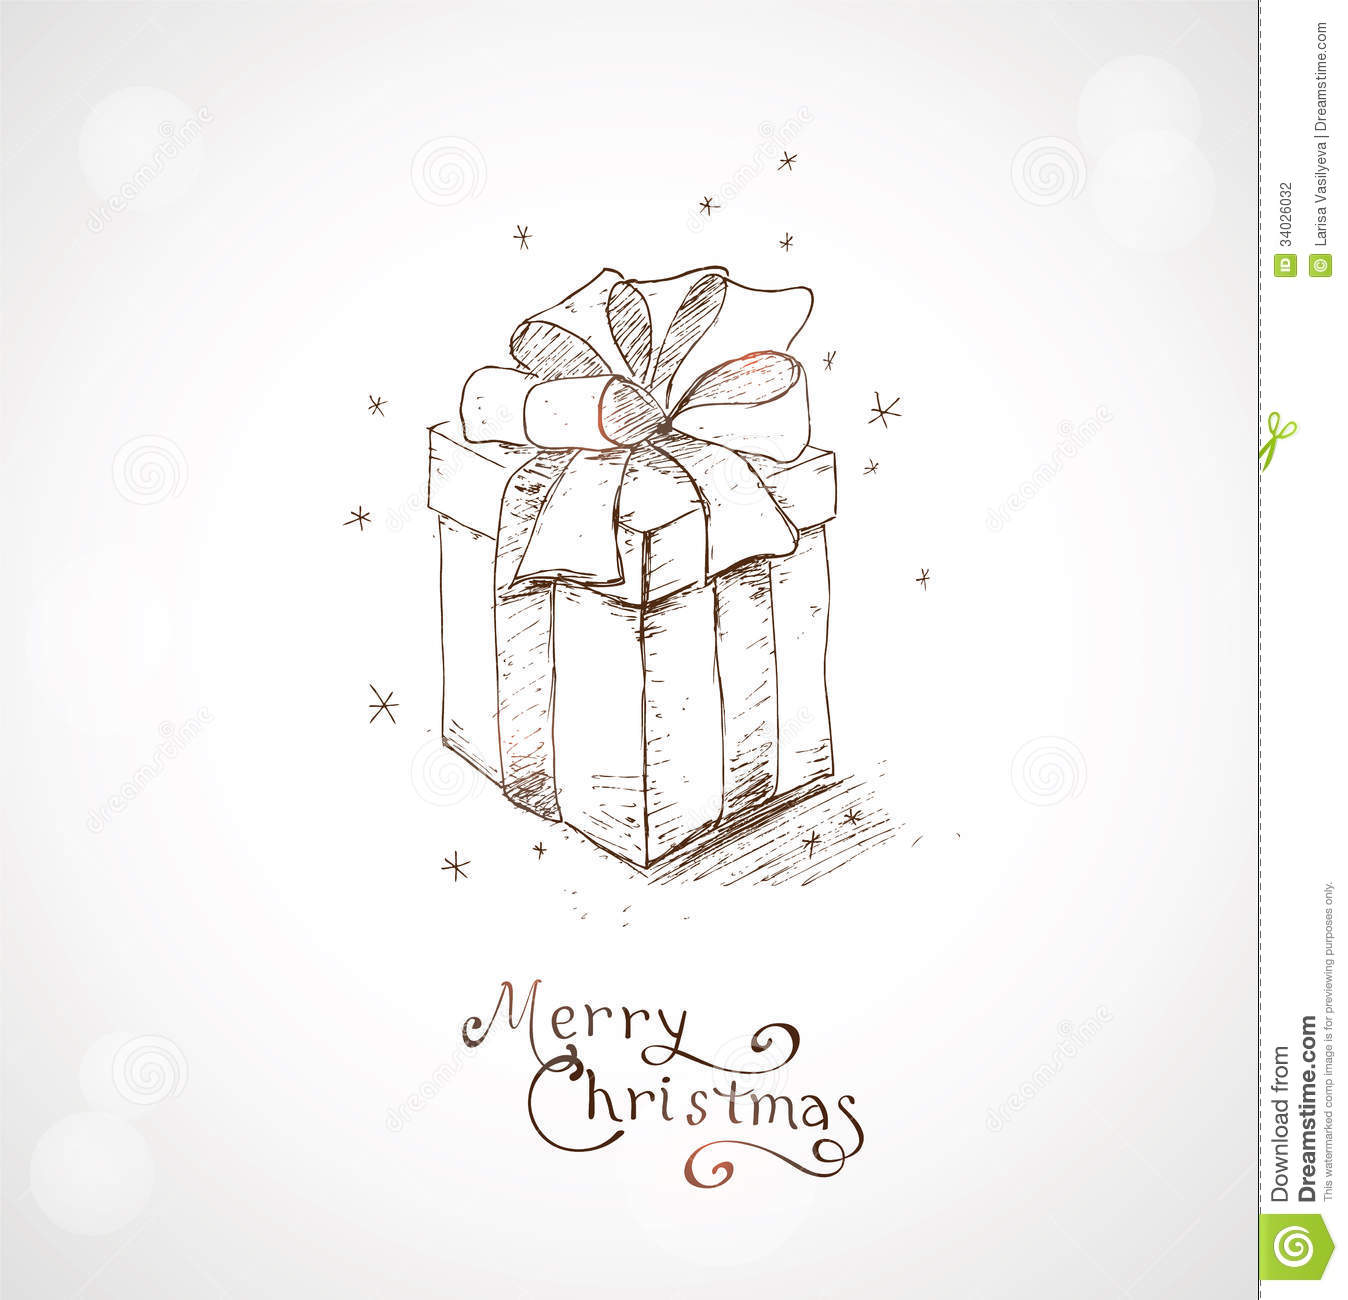 christmas coloring cards design ideas 8 christmas greeting card 4